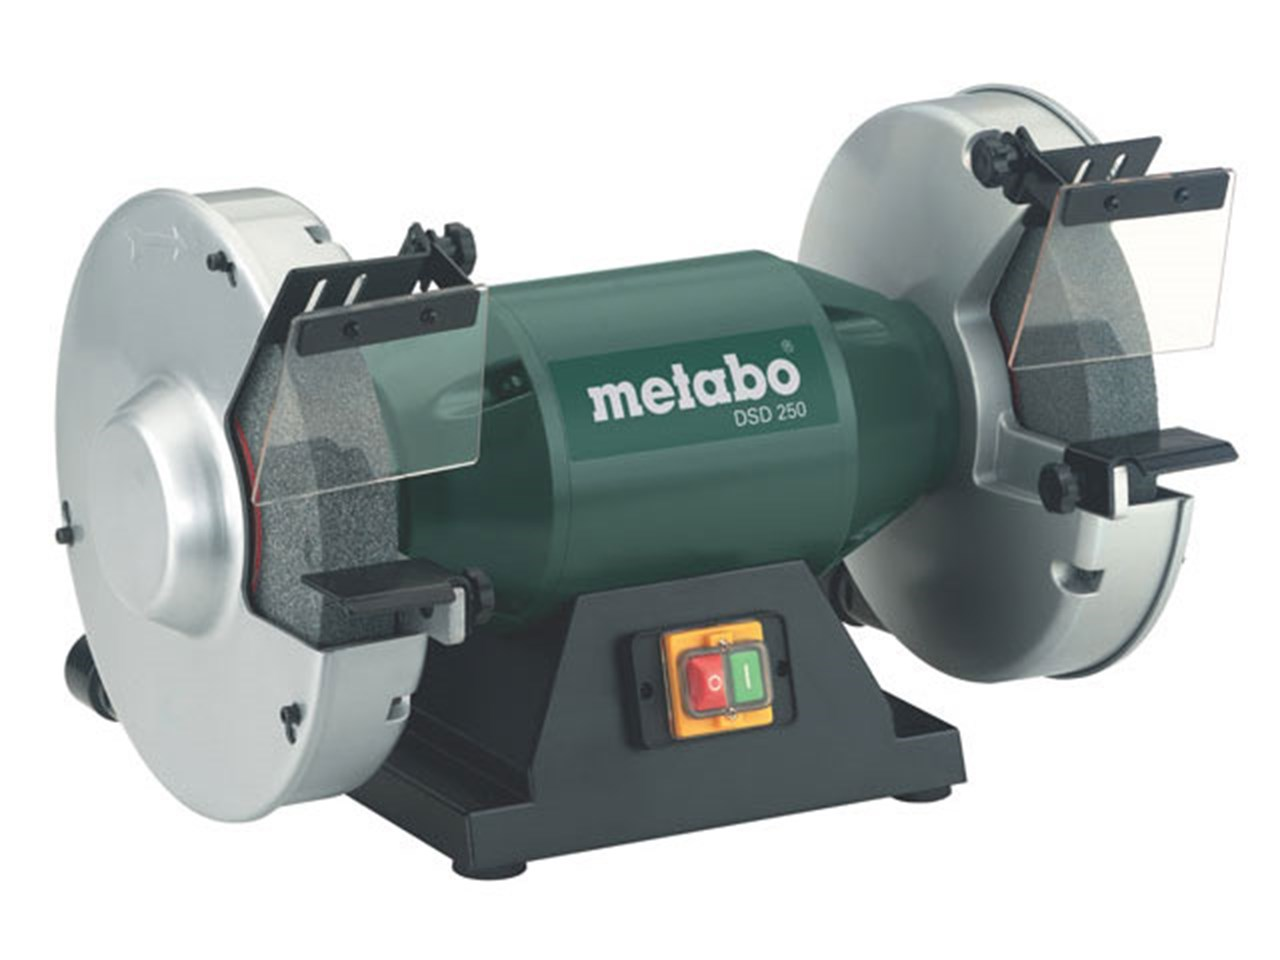 Super Metabo Dsd 250 400V 400V 250Mm Bench Grinder Gmtry Best Dining Table And Chair Ideas Images Gmtryco